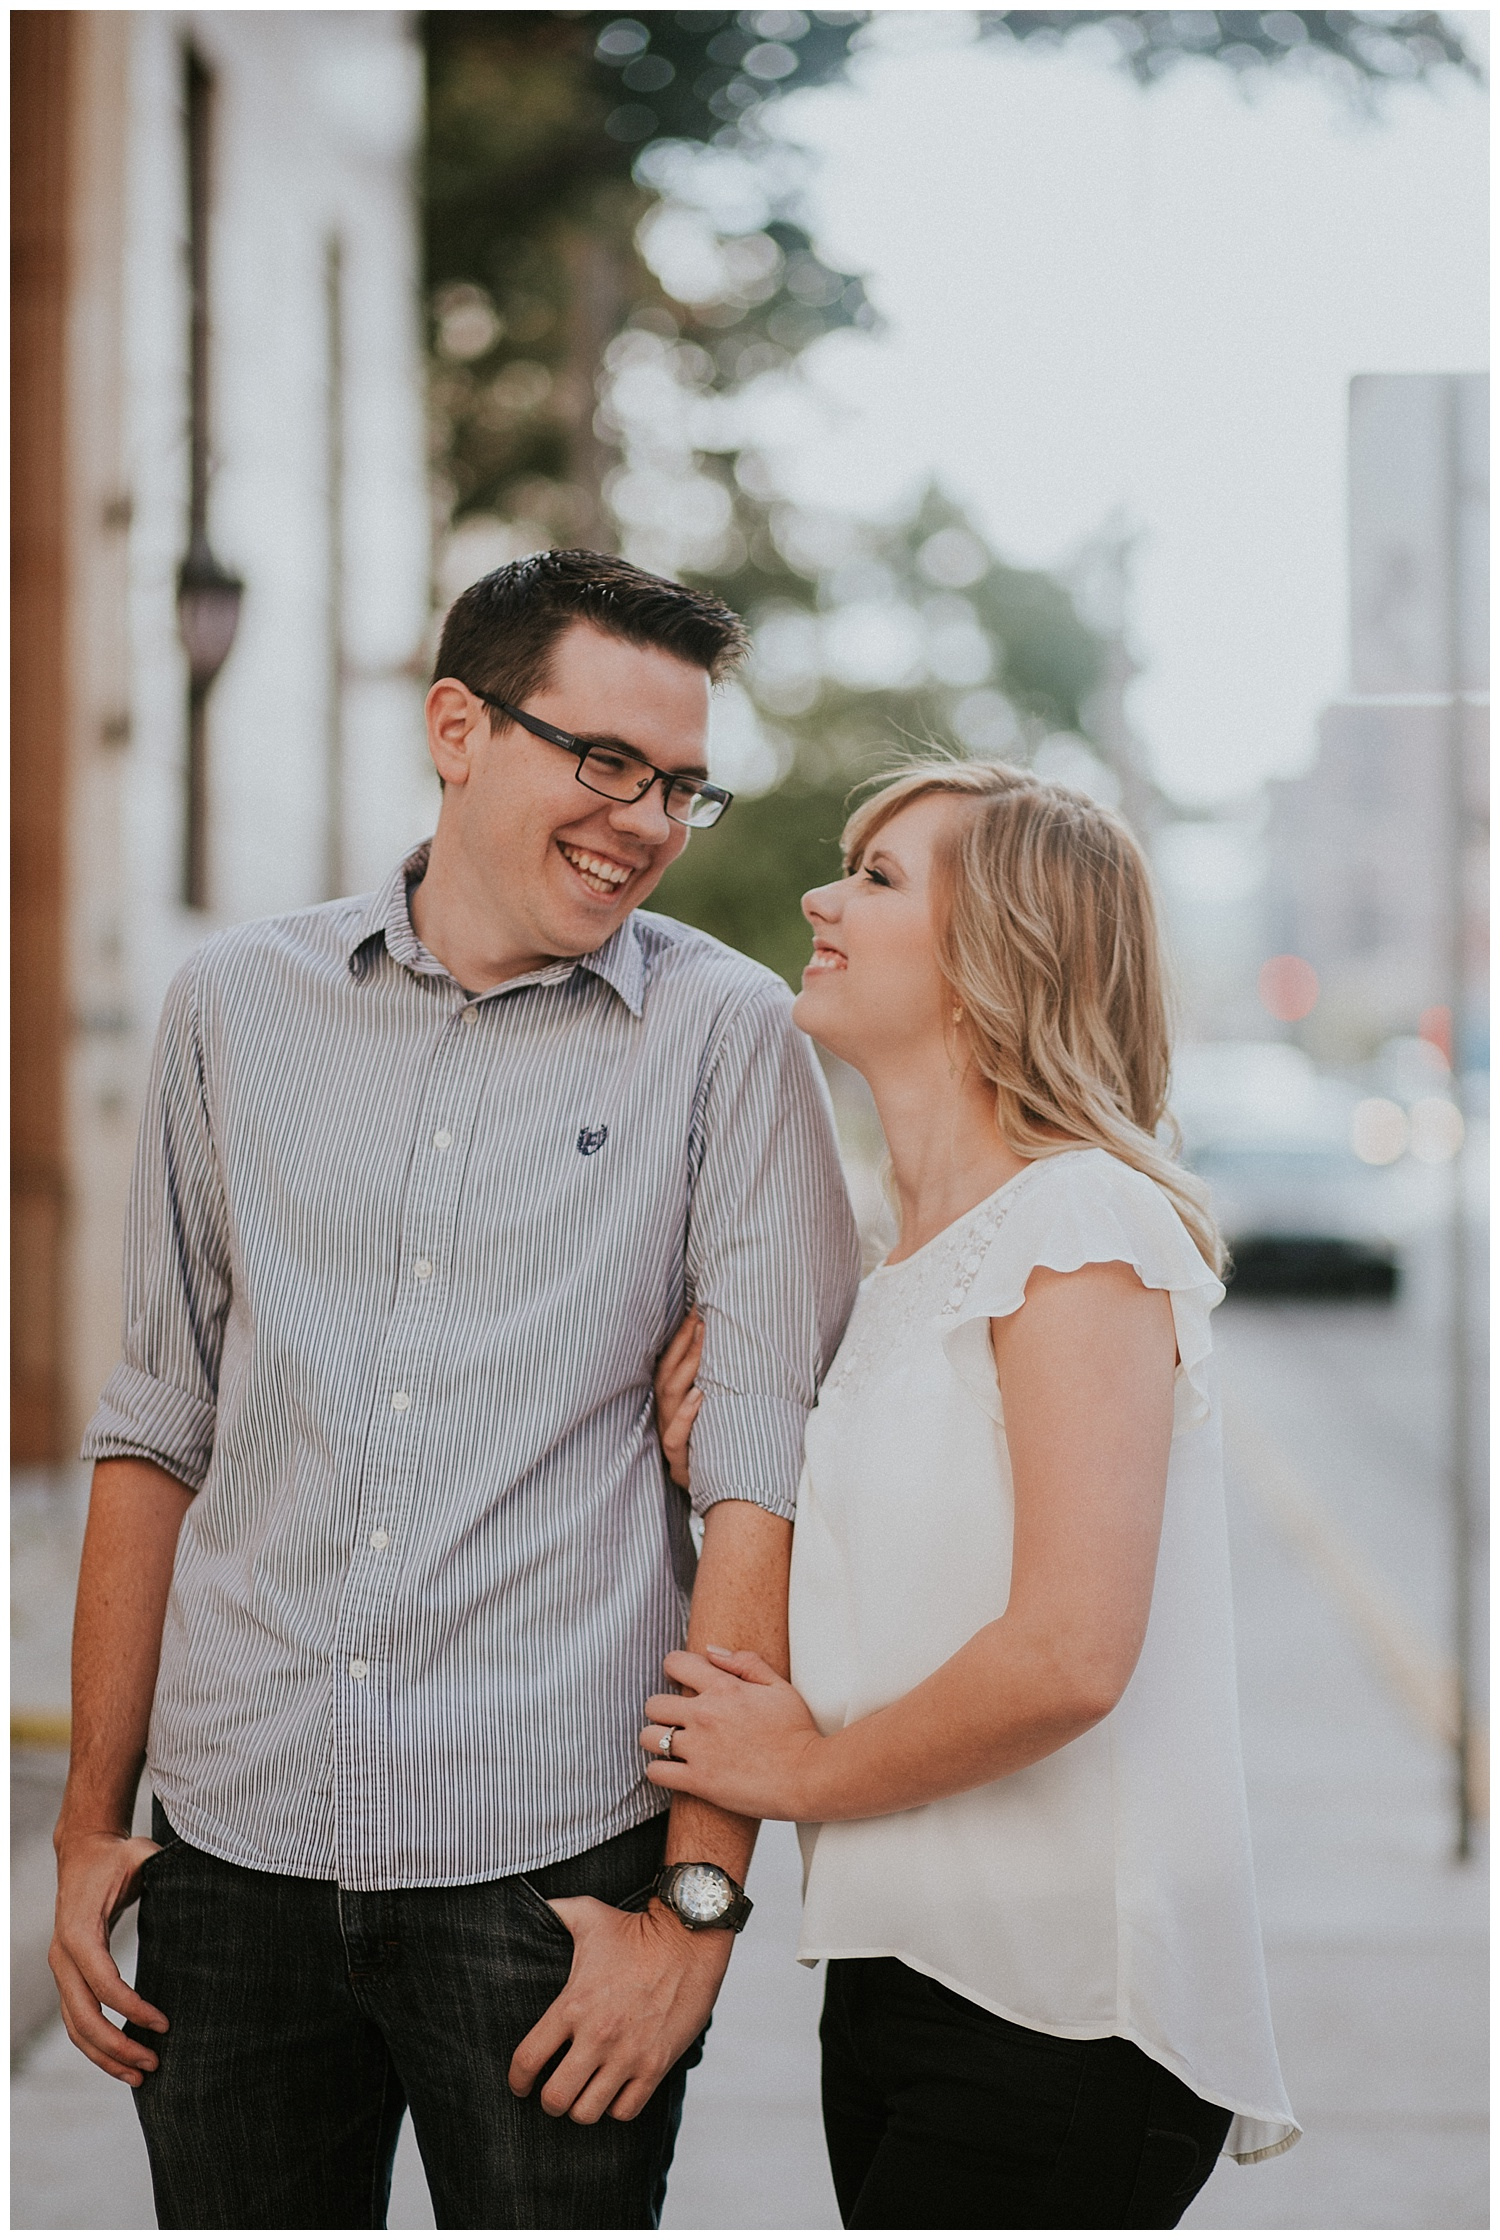 These incredible Albuquerque engagement photos are the perfect combination of rustic and urban style. | Engagement Photo Inspiration by Jasper K Photography | New Mexico Engagement Photography